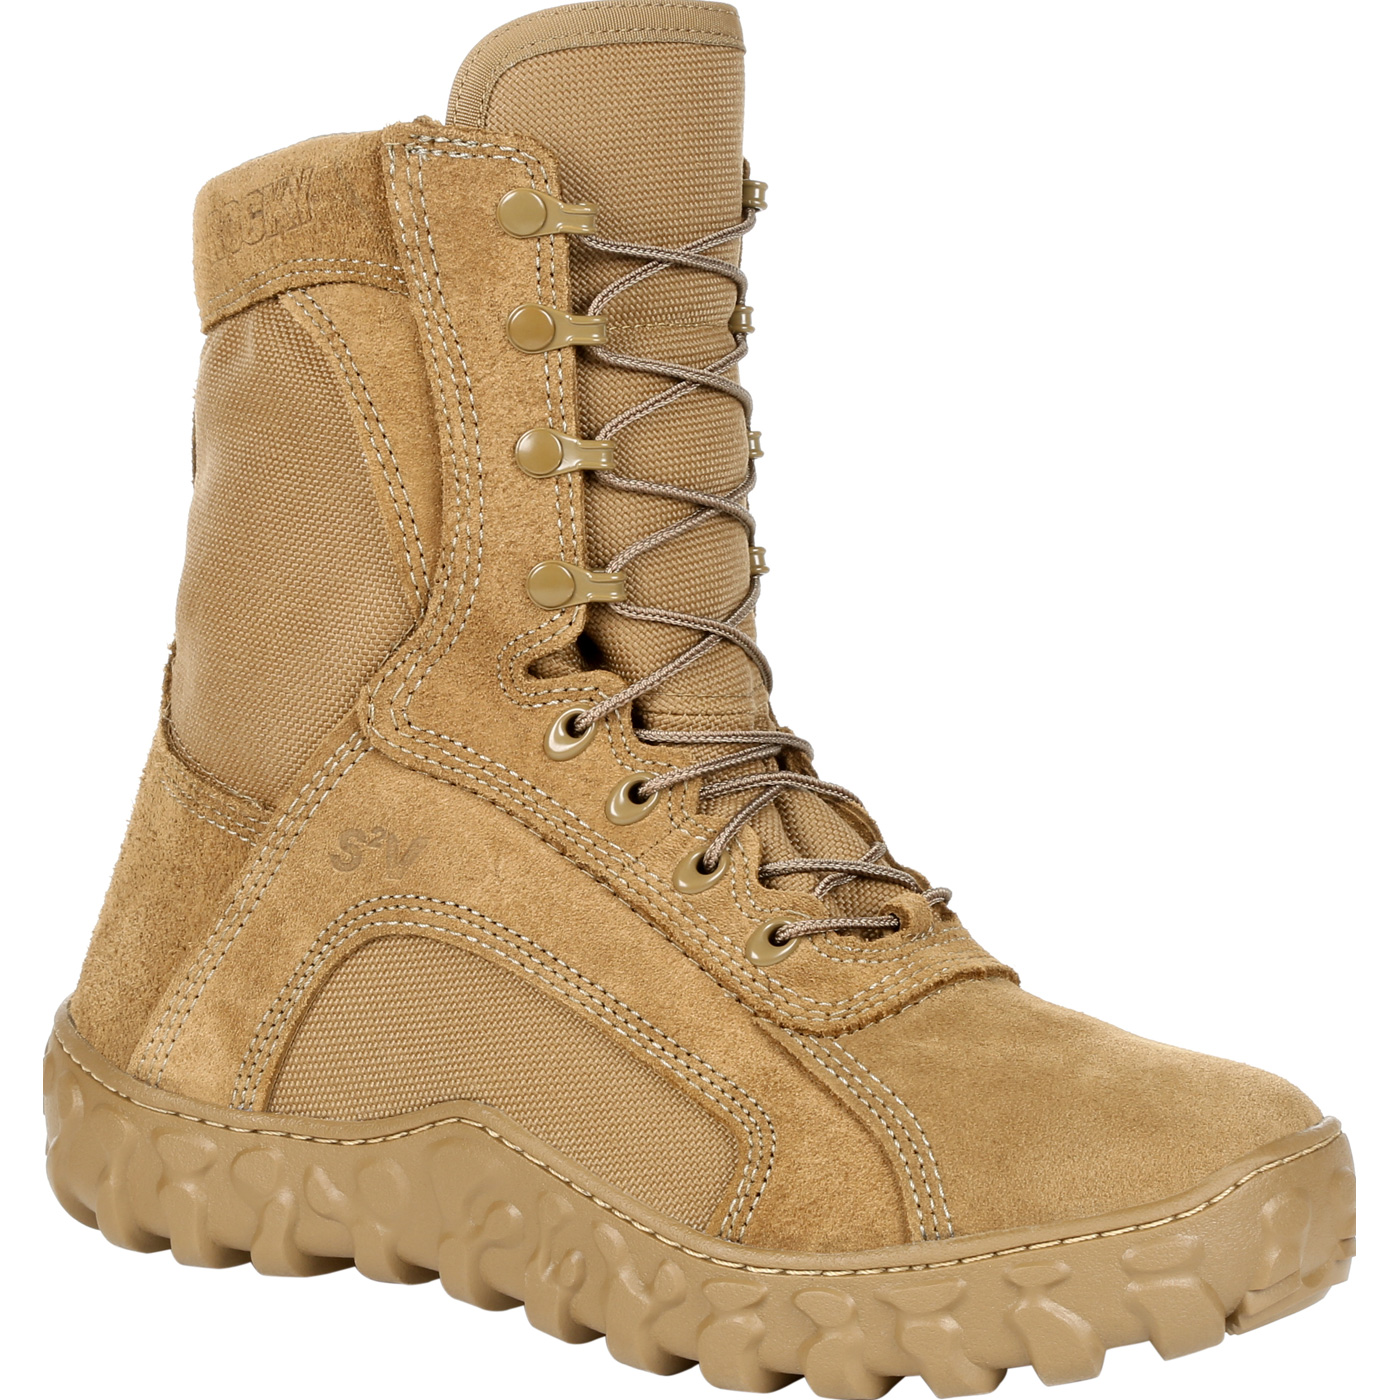 a62938f7d504 Rocky S2V Waterproof 400G Insulated Tactical Military Boot